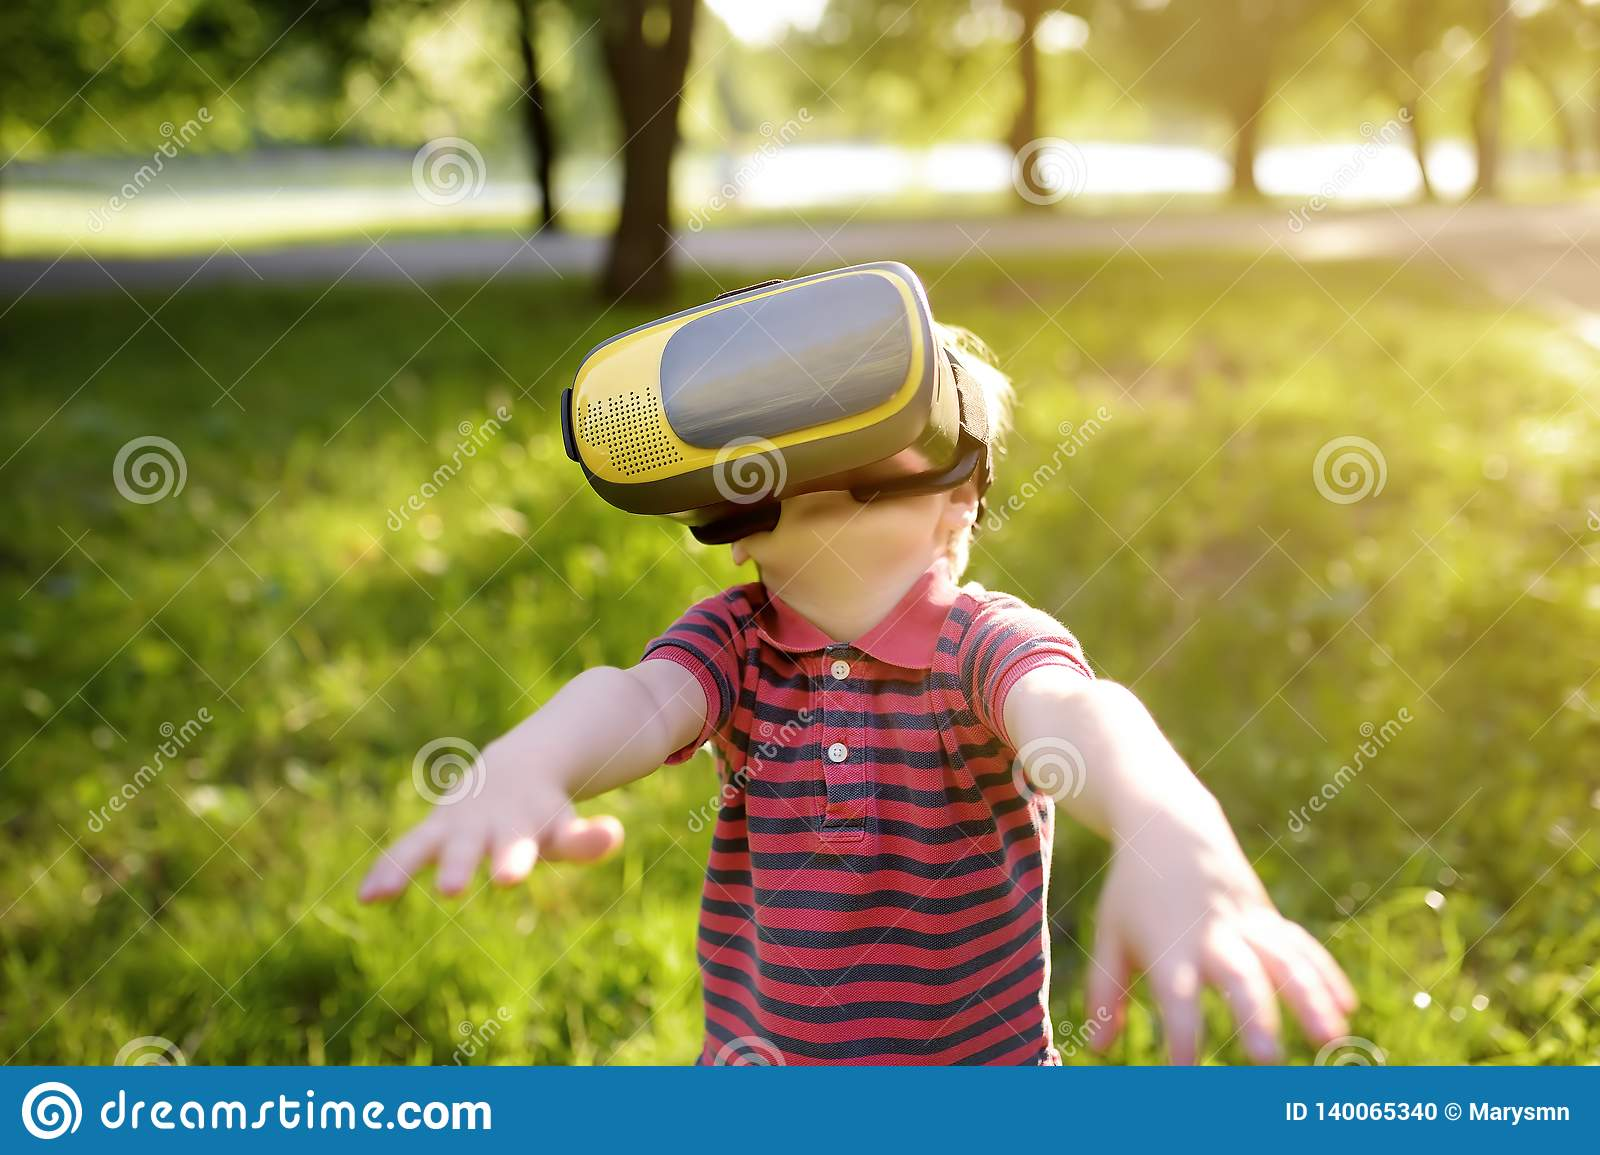 072703651c4 Little Boy Using Virtual Reality Headset Outdoor. VR